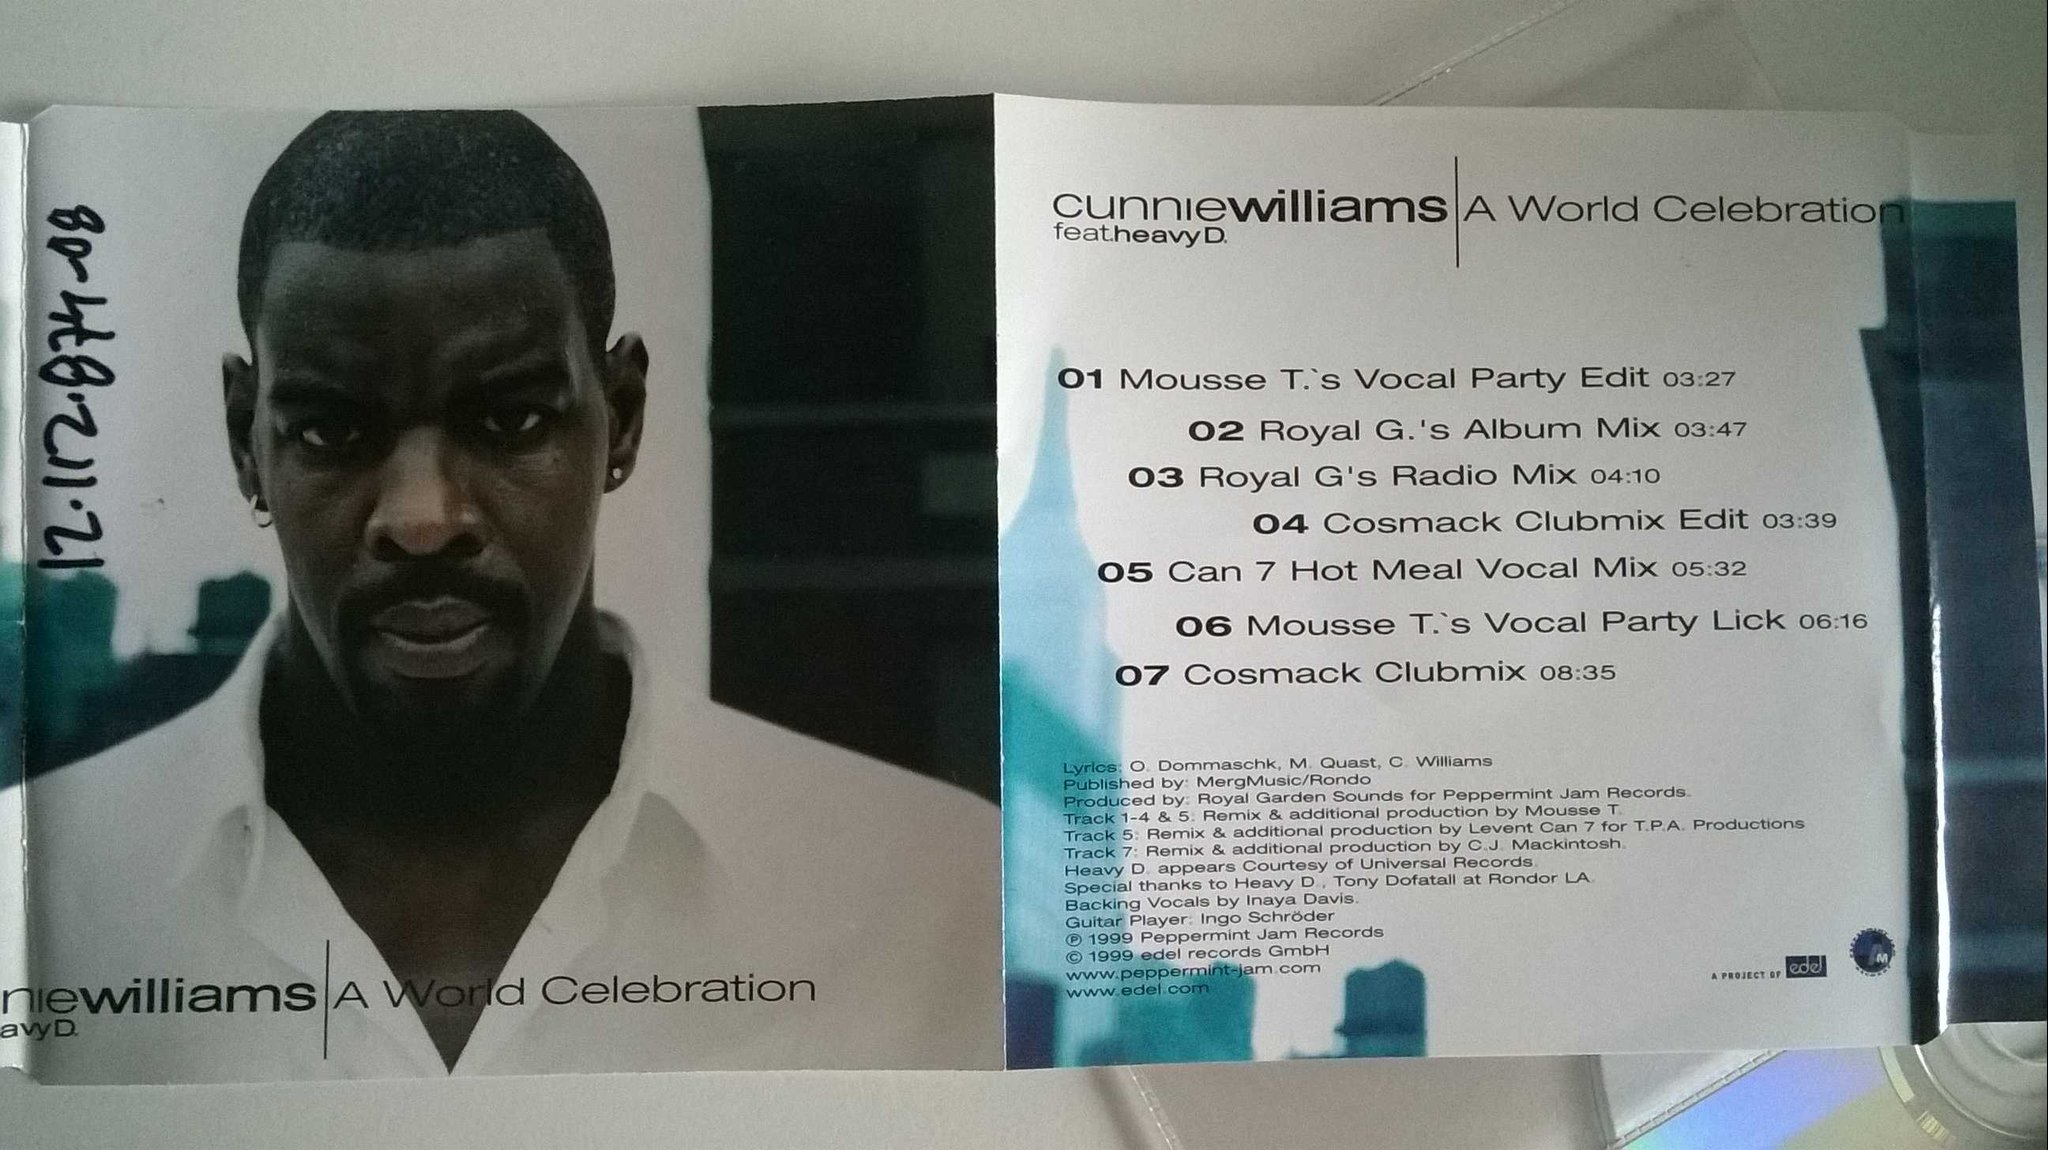 Cunnie Williams feat. HeavyD - A world celebrations, CD